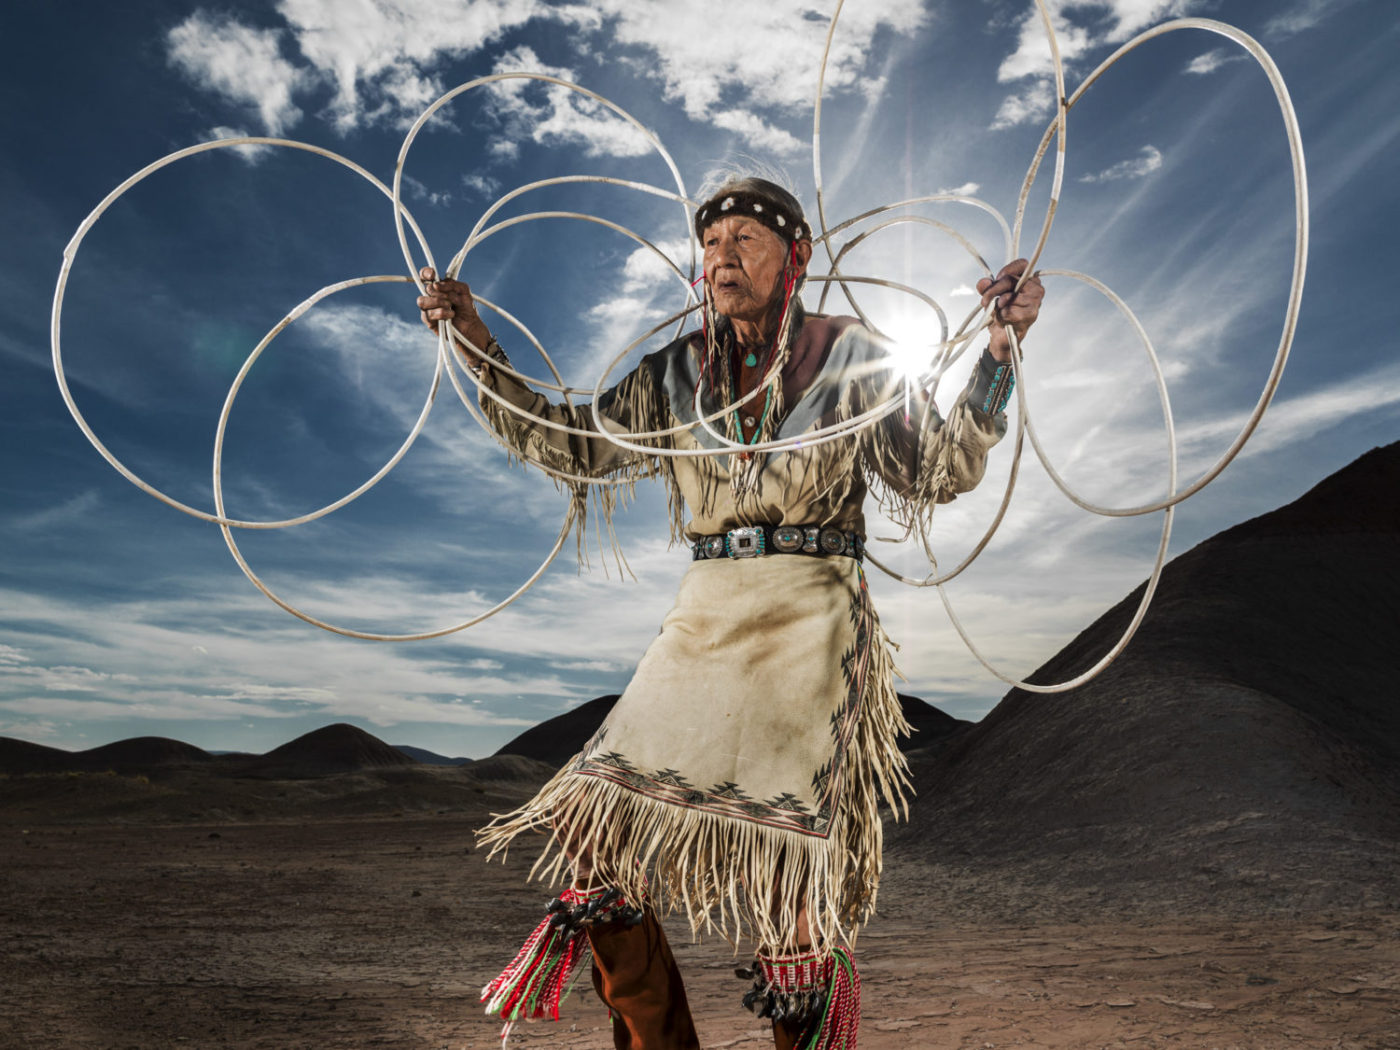 Navajo-elder-Jones-Benally-performs-traditional-hoop-dance-in-Germany-2008-by-Brent-Stirton-1400x1050, The other deadly COVID prisons: Reservations and COVID-19, National News & Views